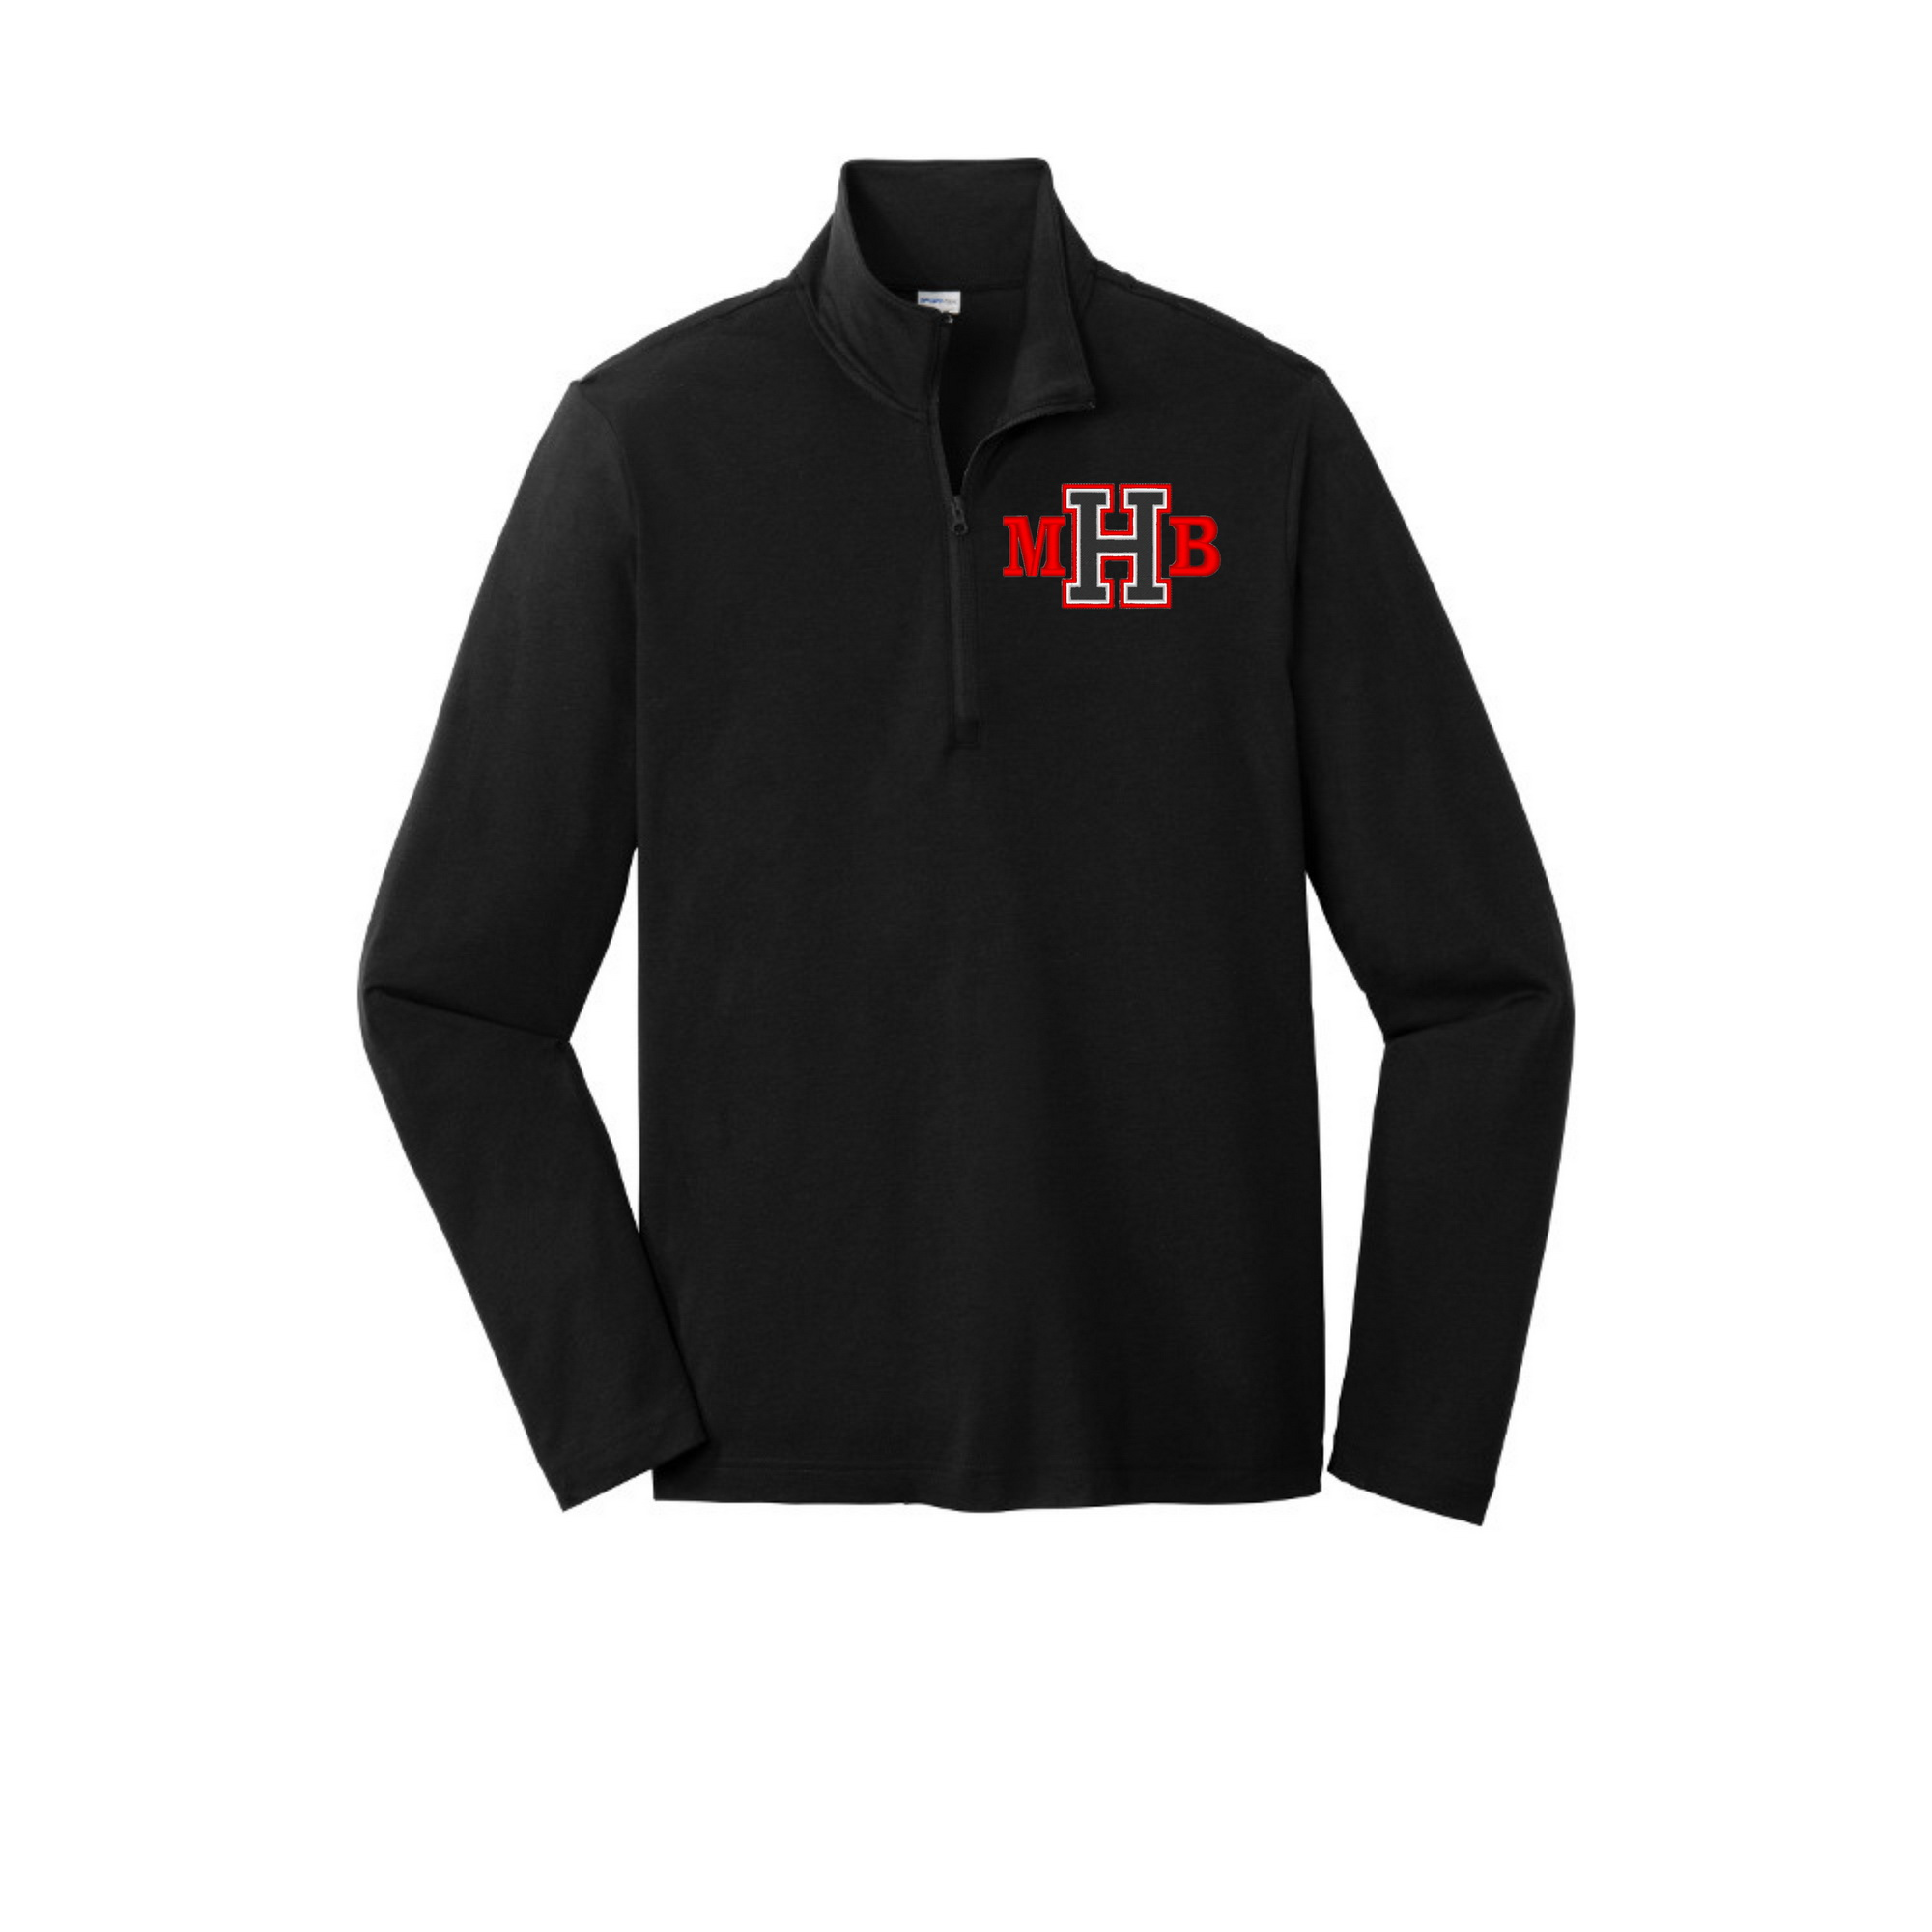 1/4 Zip light weight pull over